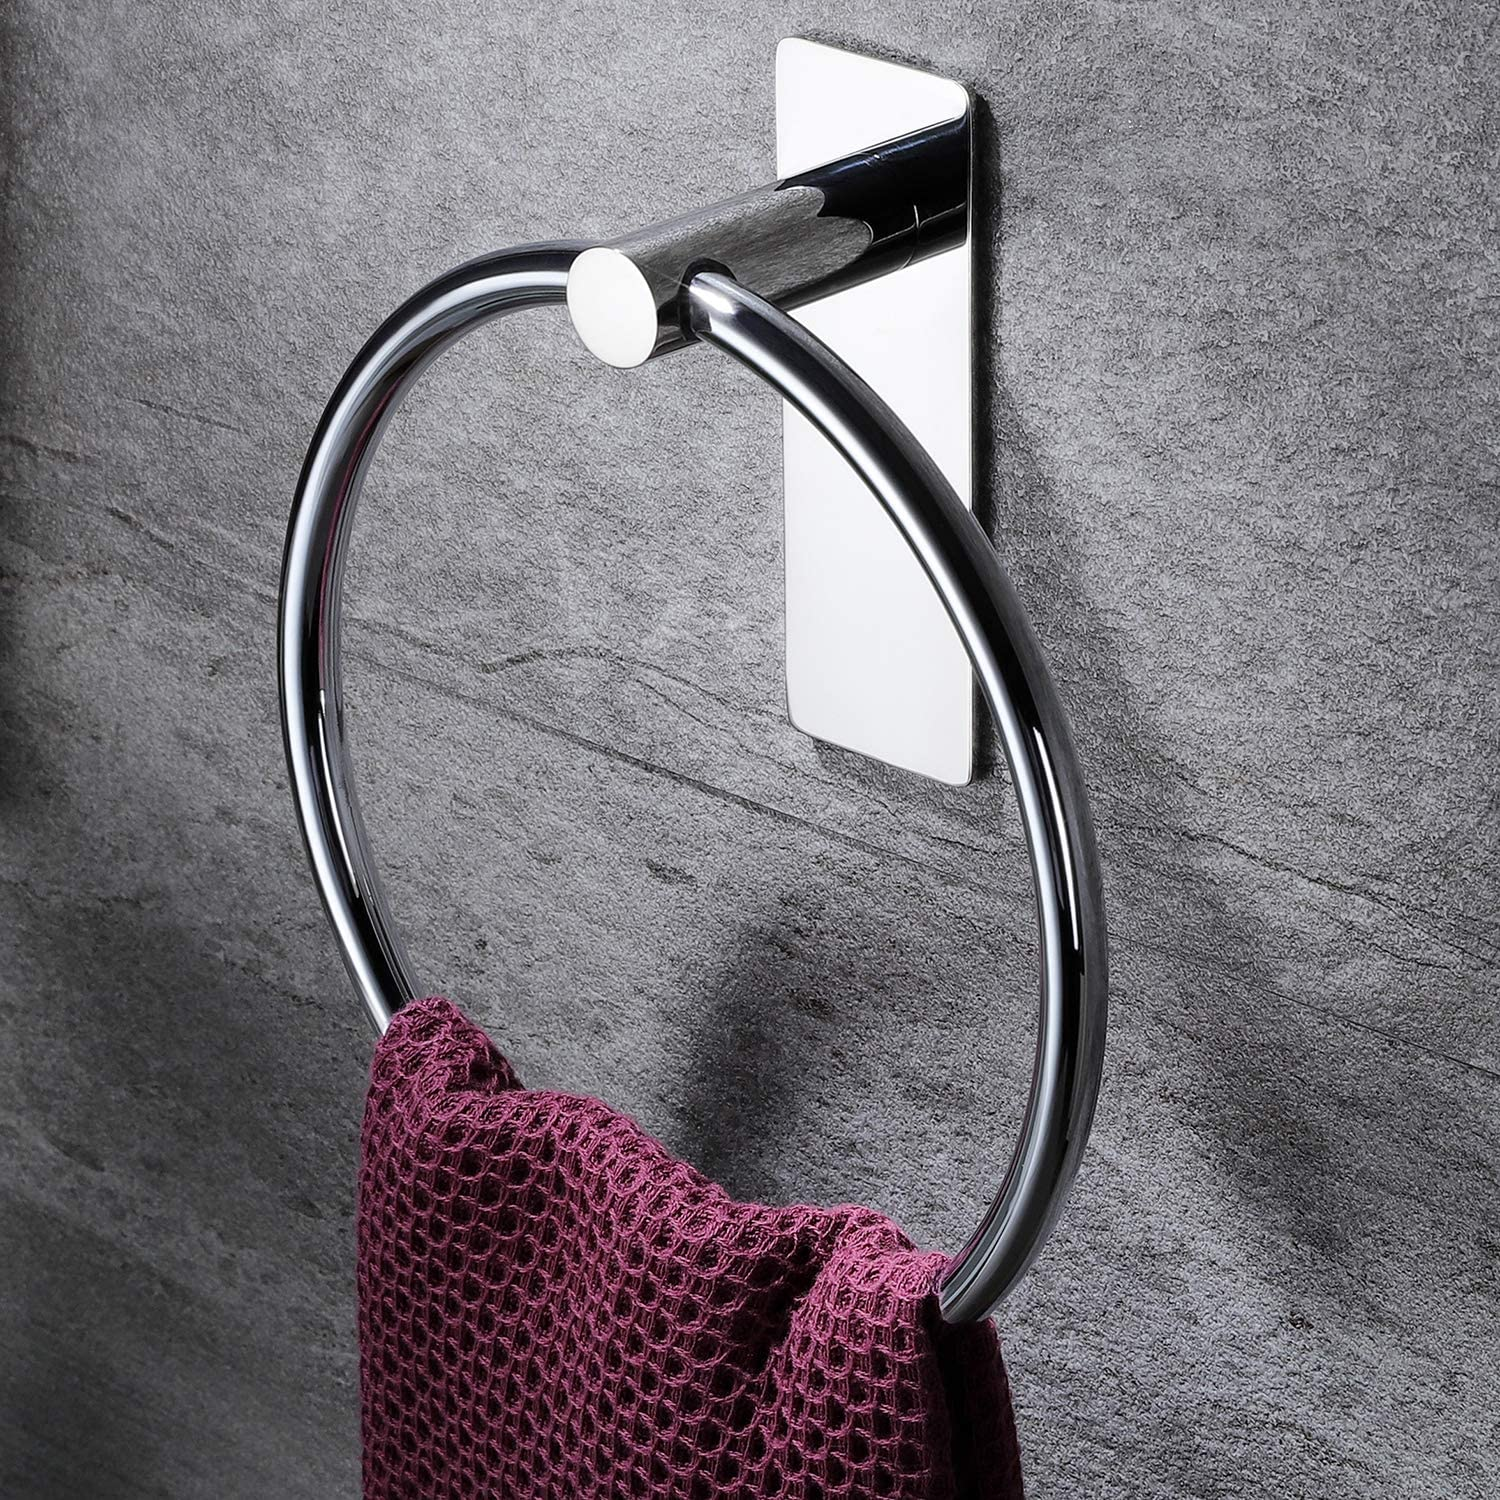 YIGII Hand Towel Holder/Towel Ring - Self Adhesive Hand Towel Rack for Bathroom Simple Round Towel Bar SUS 304 Stainless Steel, Fit Towels, Polished